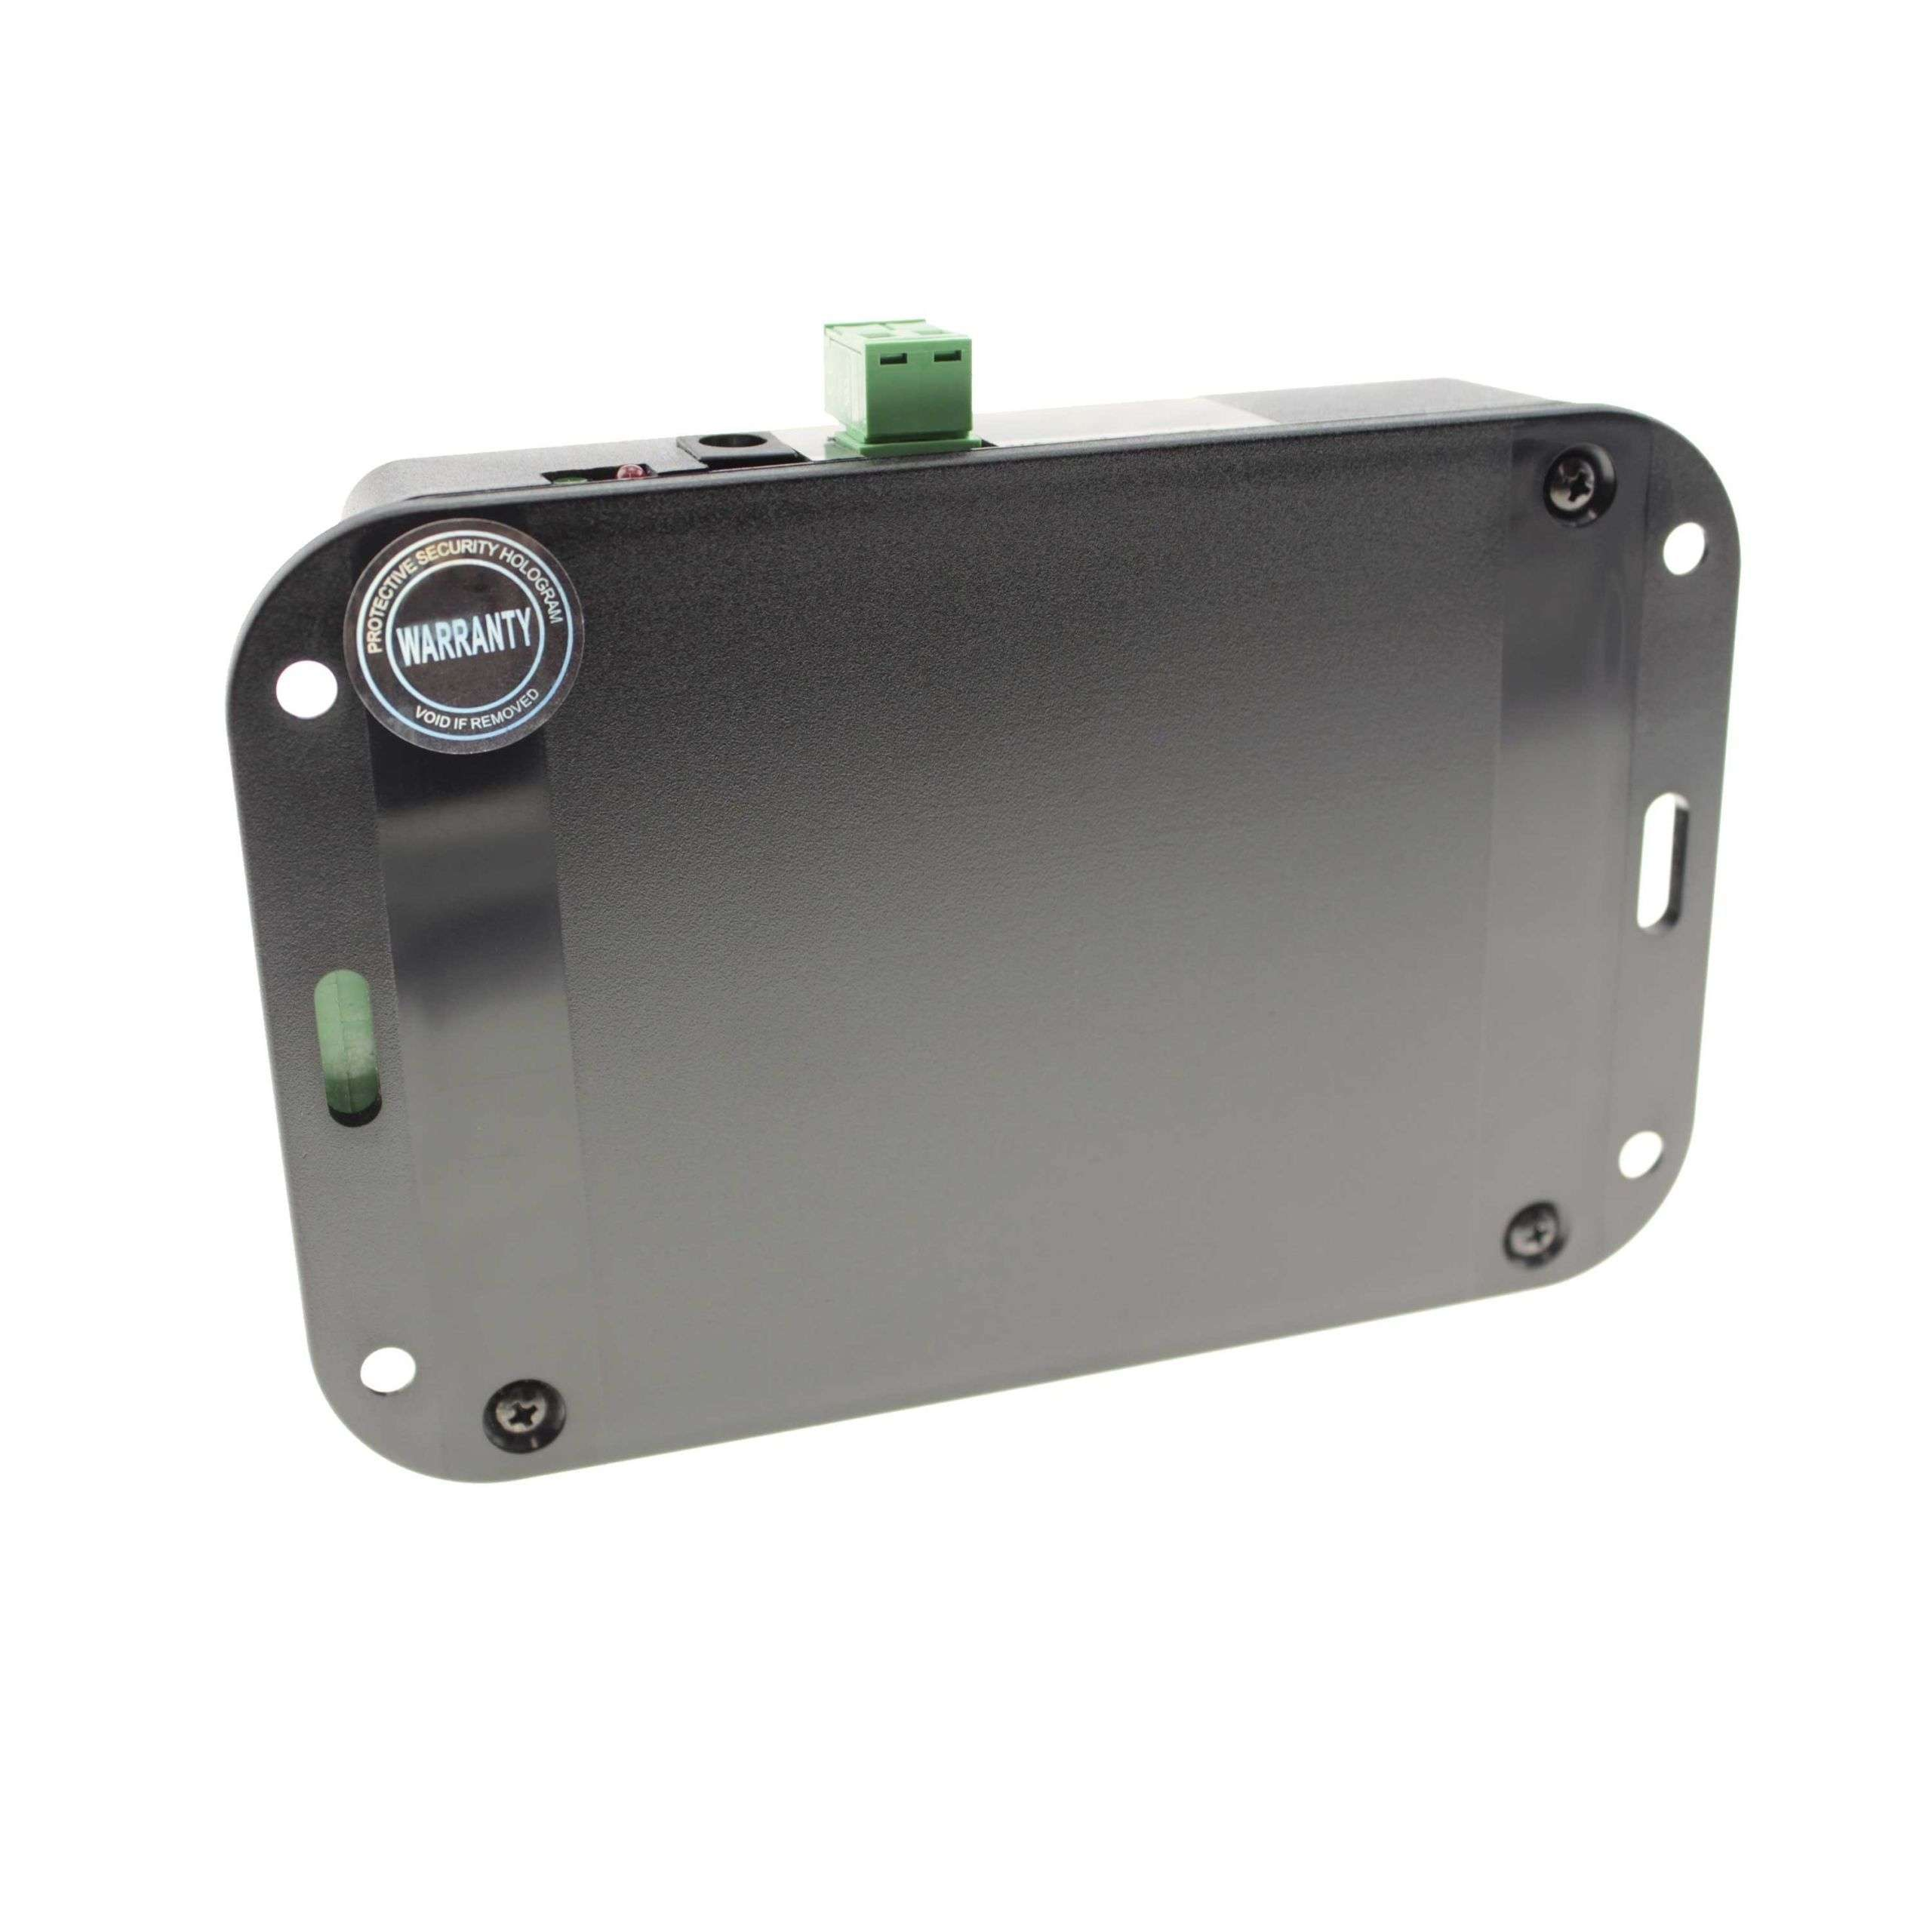 DRIVER LED HDLR 4 canales. SERIE L800